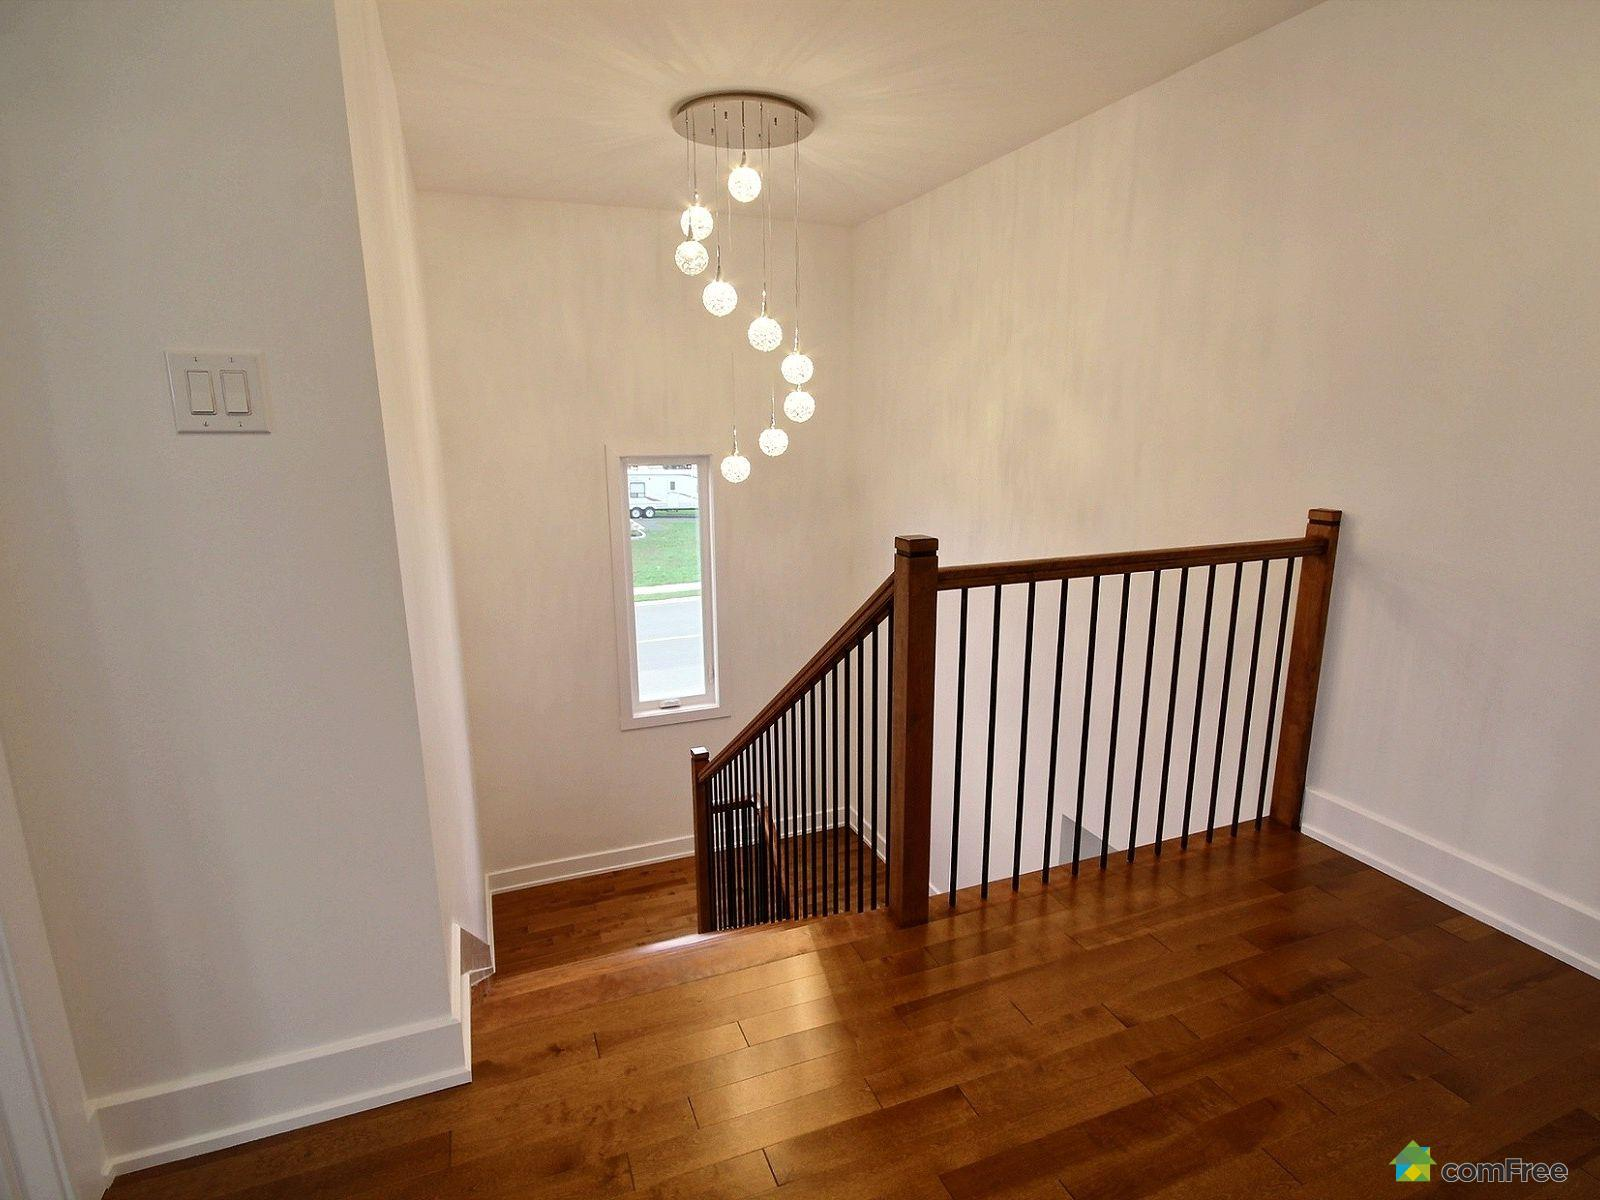 staircase-new-home-for-sale-rockland-ontario-1600-6589209.jpg